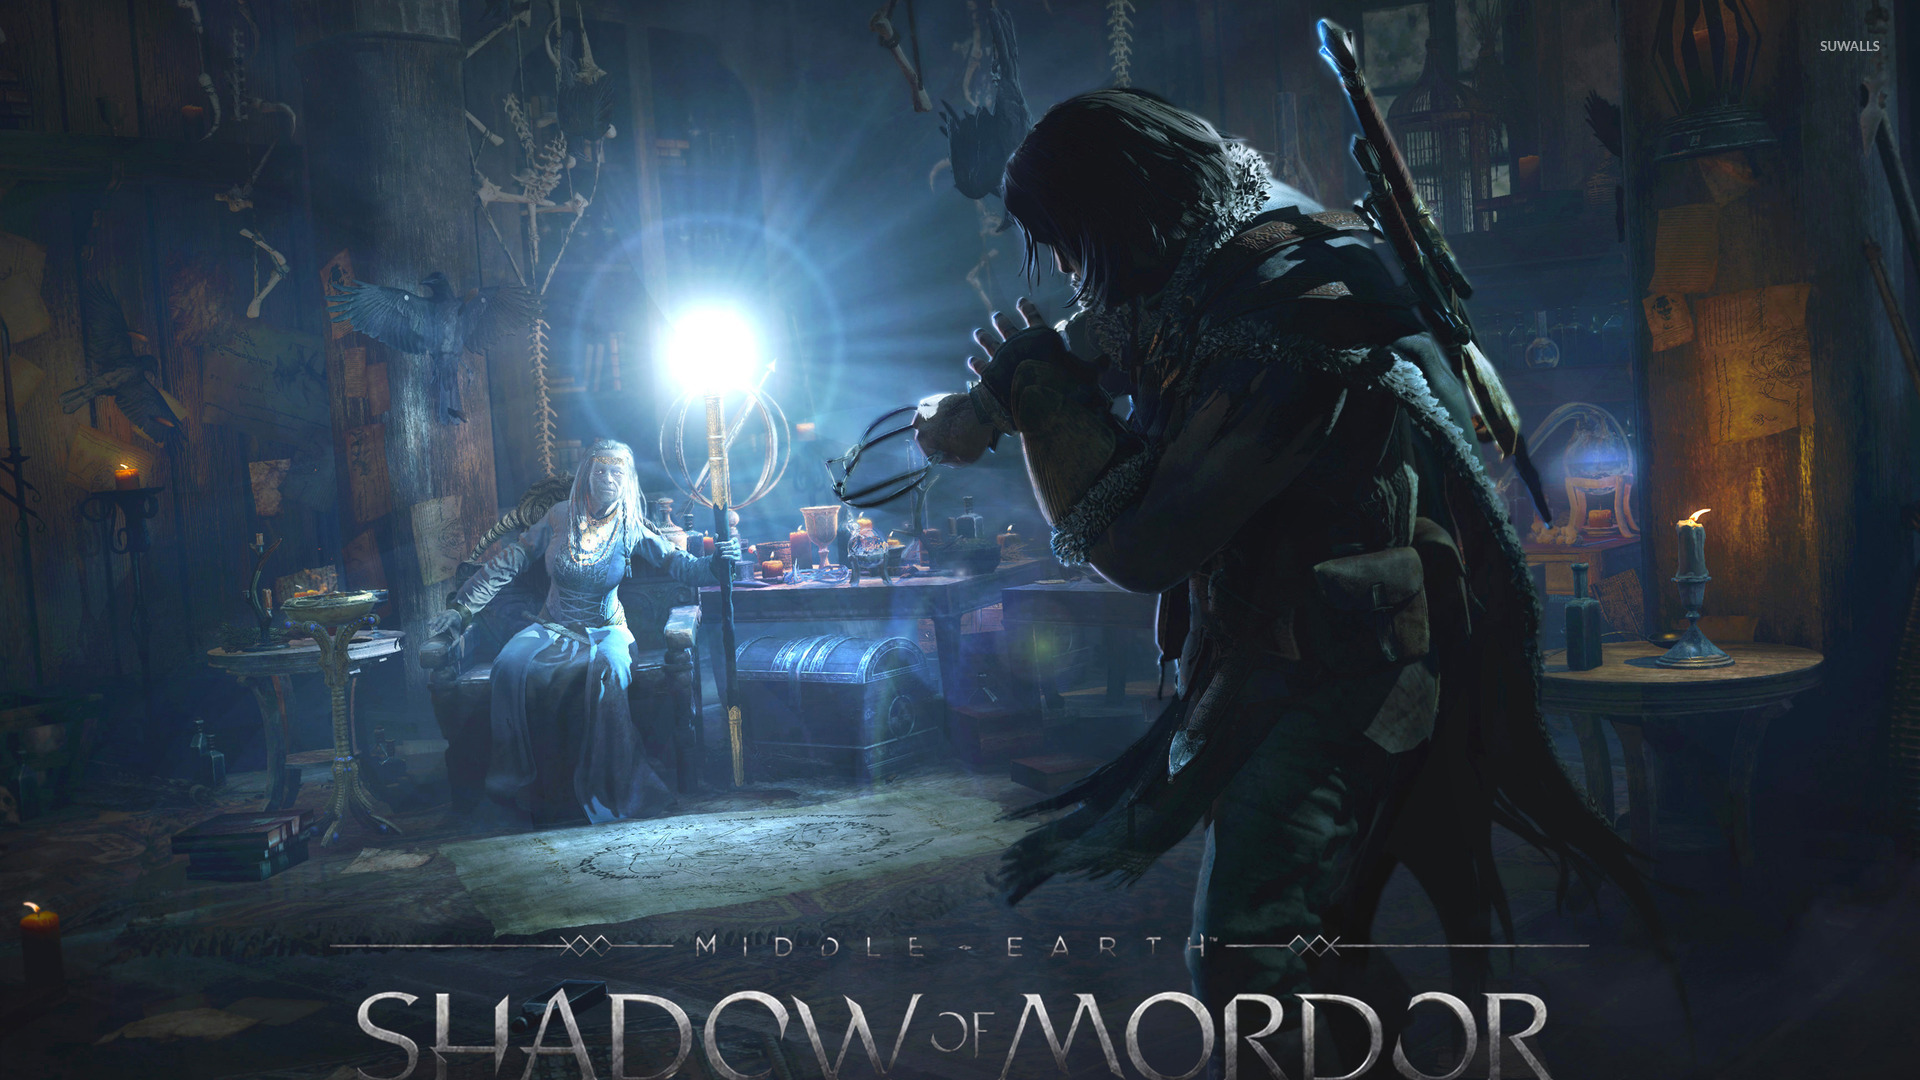 Middle Earth Shadow Of Mordor Wallpaper Game Wallpapers